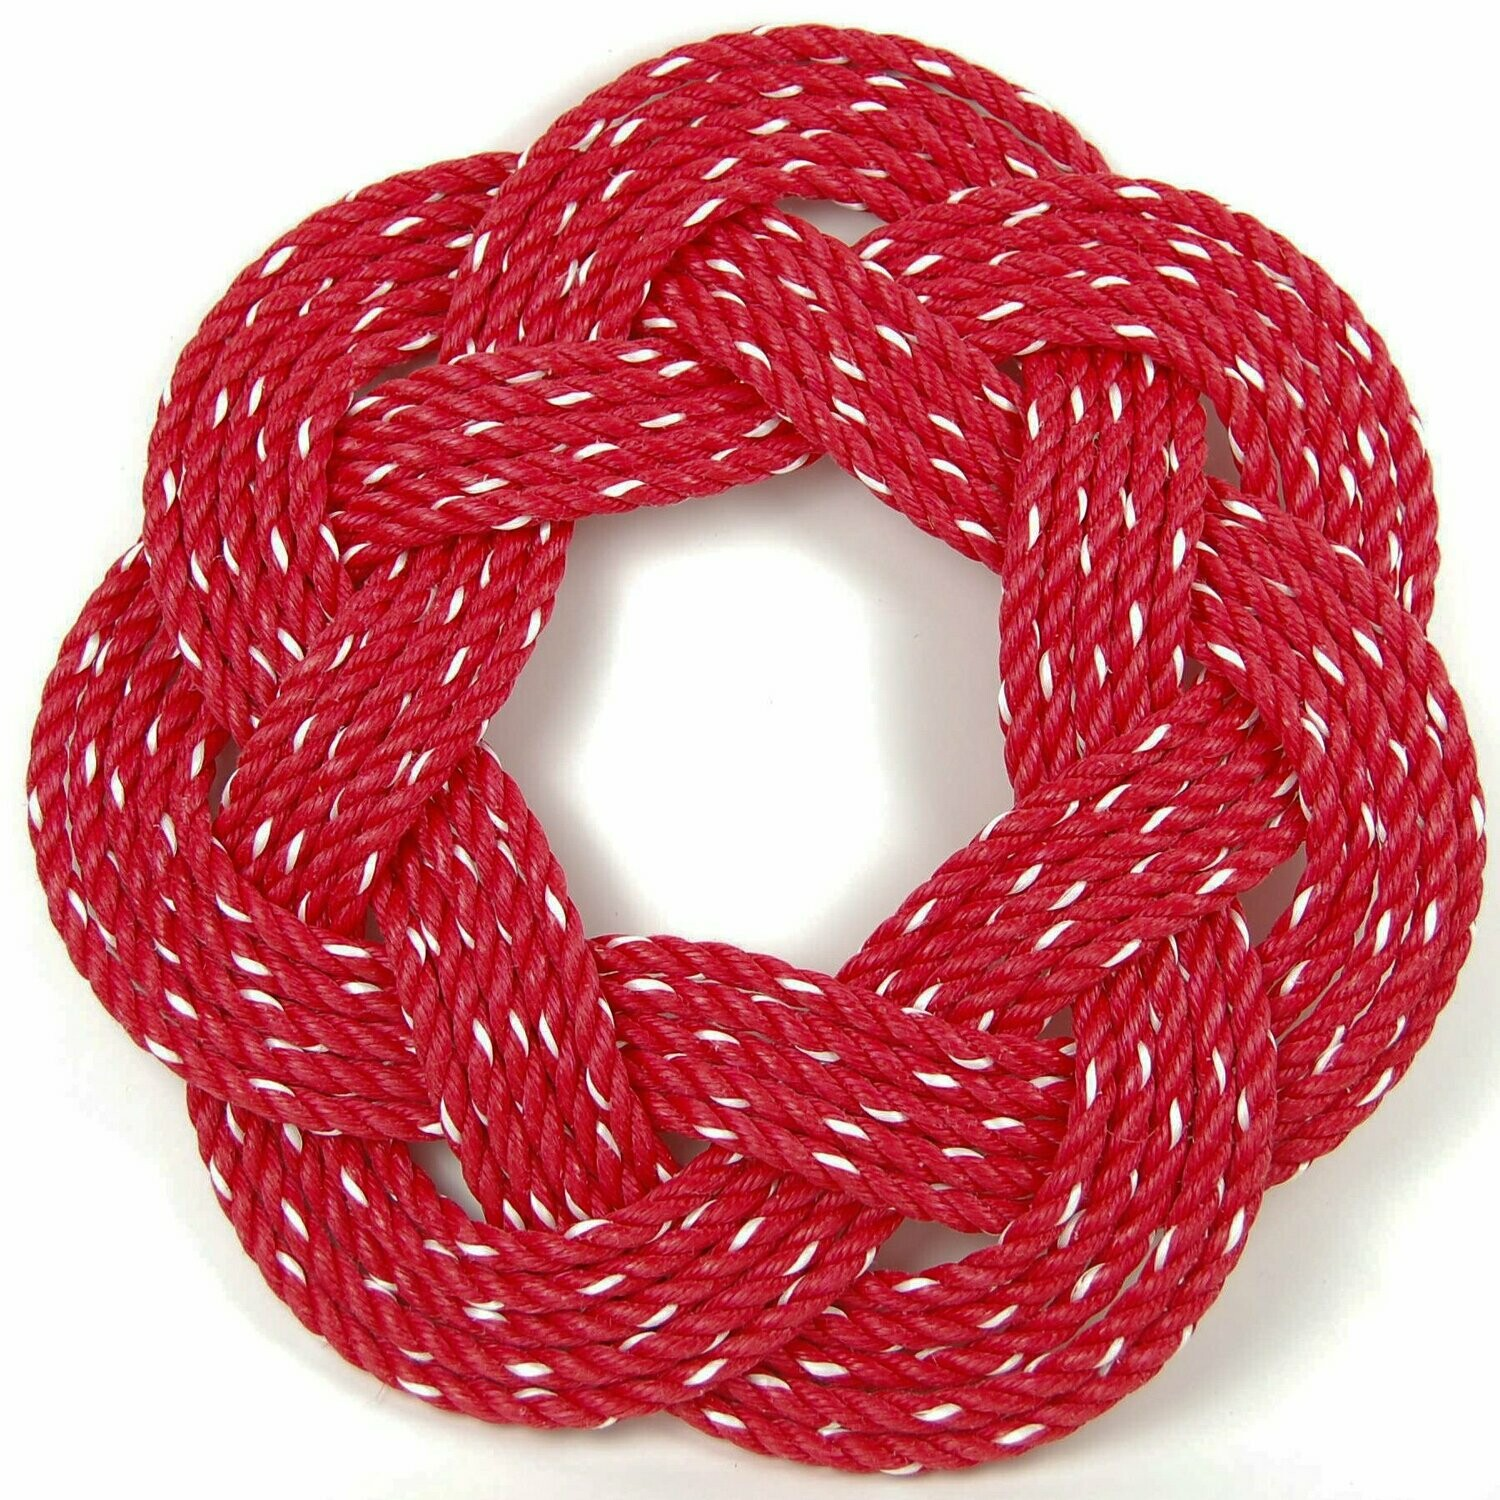 "Lobster Rope Wreath 16"", Red - All for Knot"